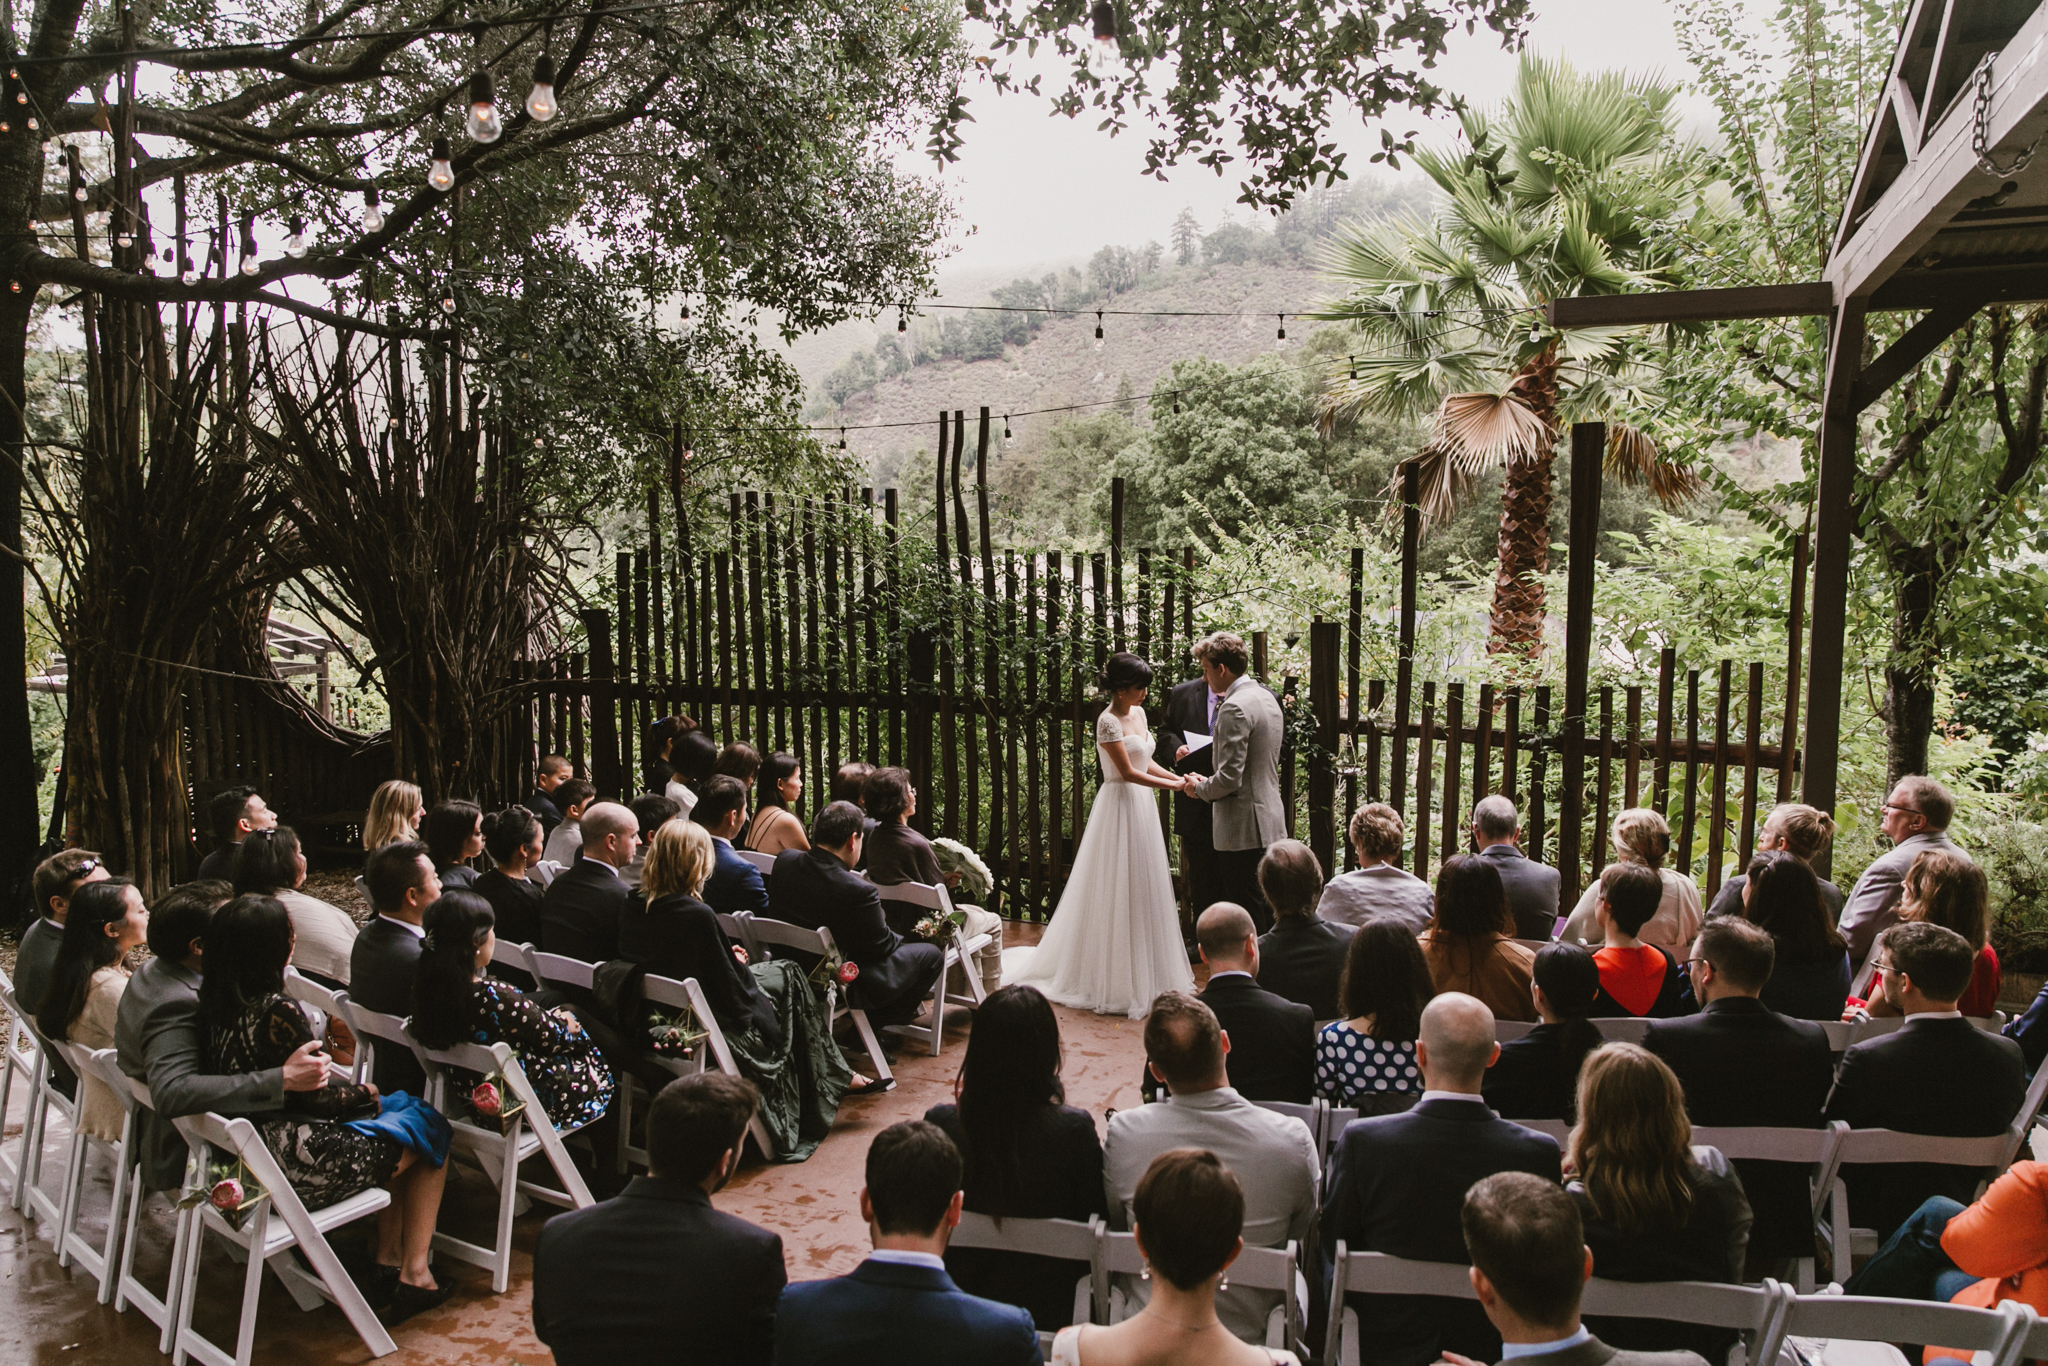 BIG SUR BAKERY WEDDING -10095